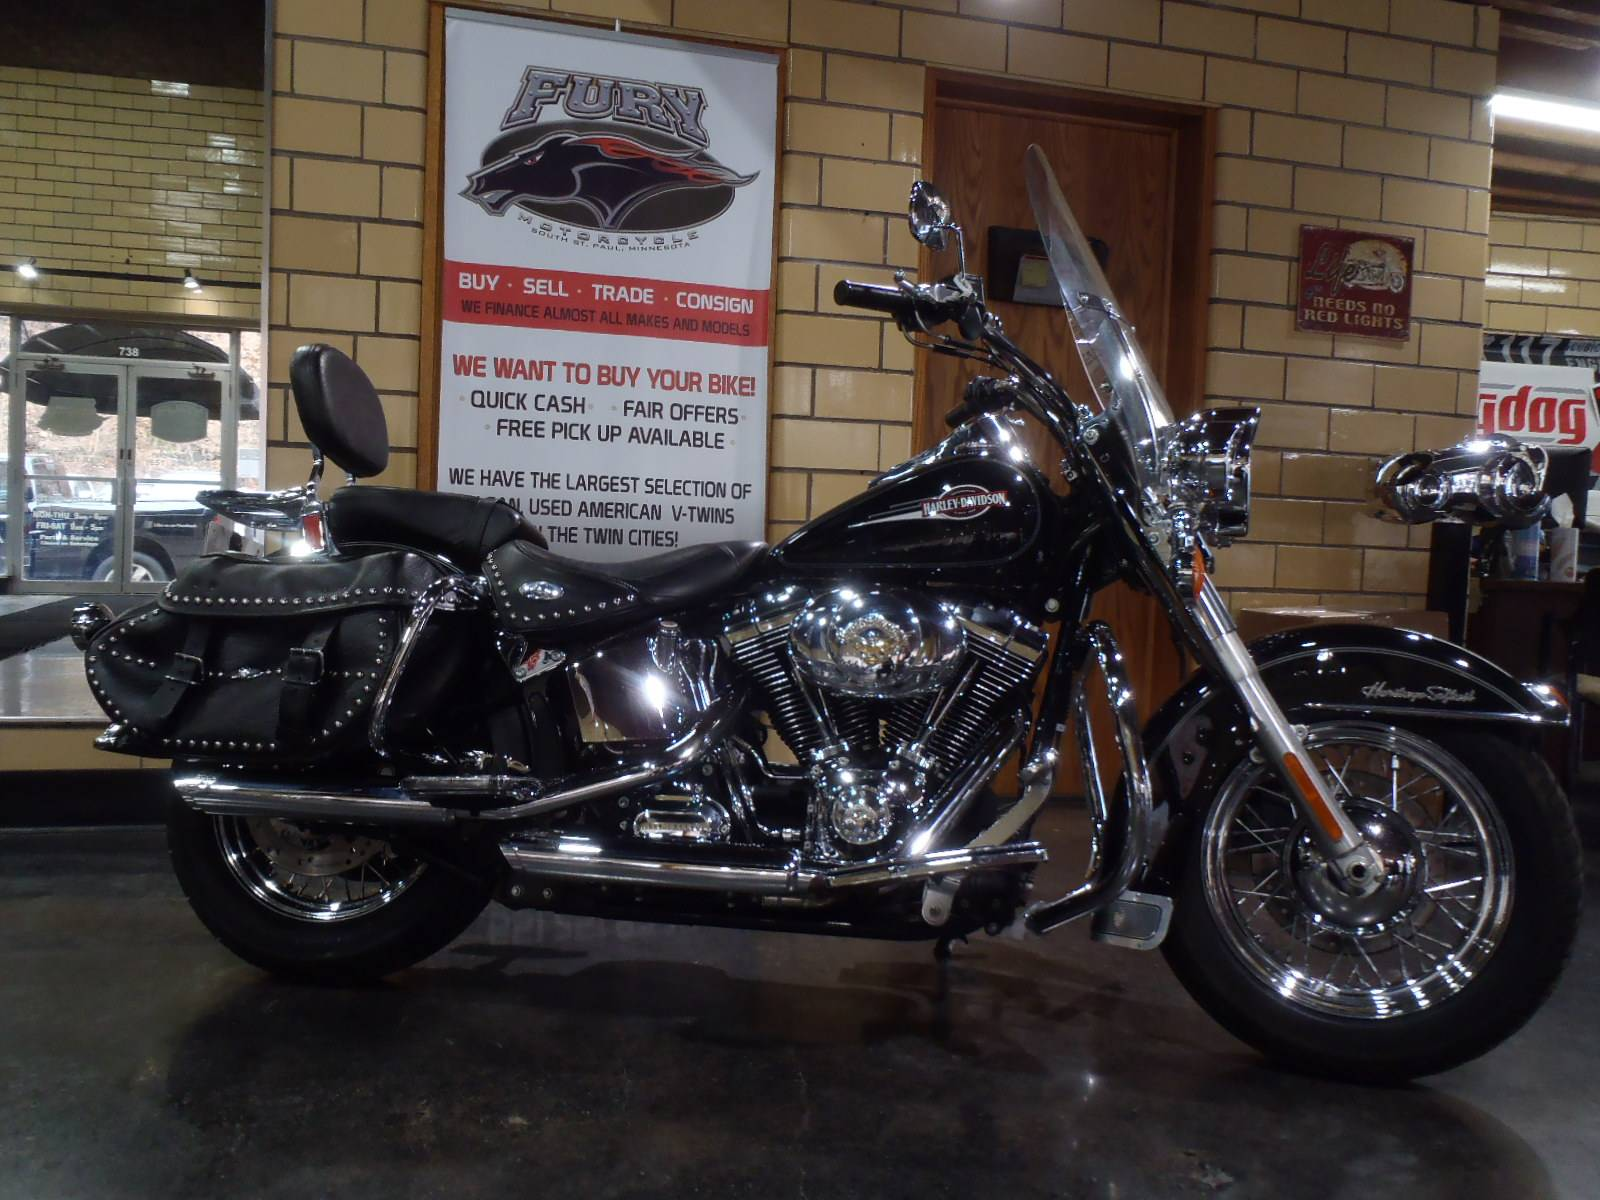 2007 Harley-Davidson Heritage Softail Classic in South Saint Paul, Minnesota - Photo 2